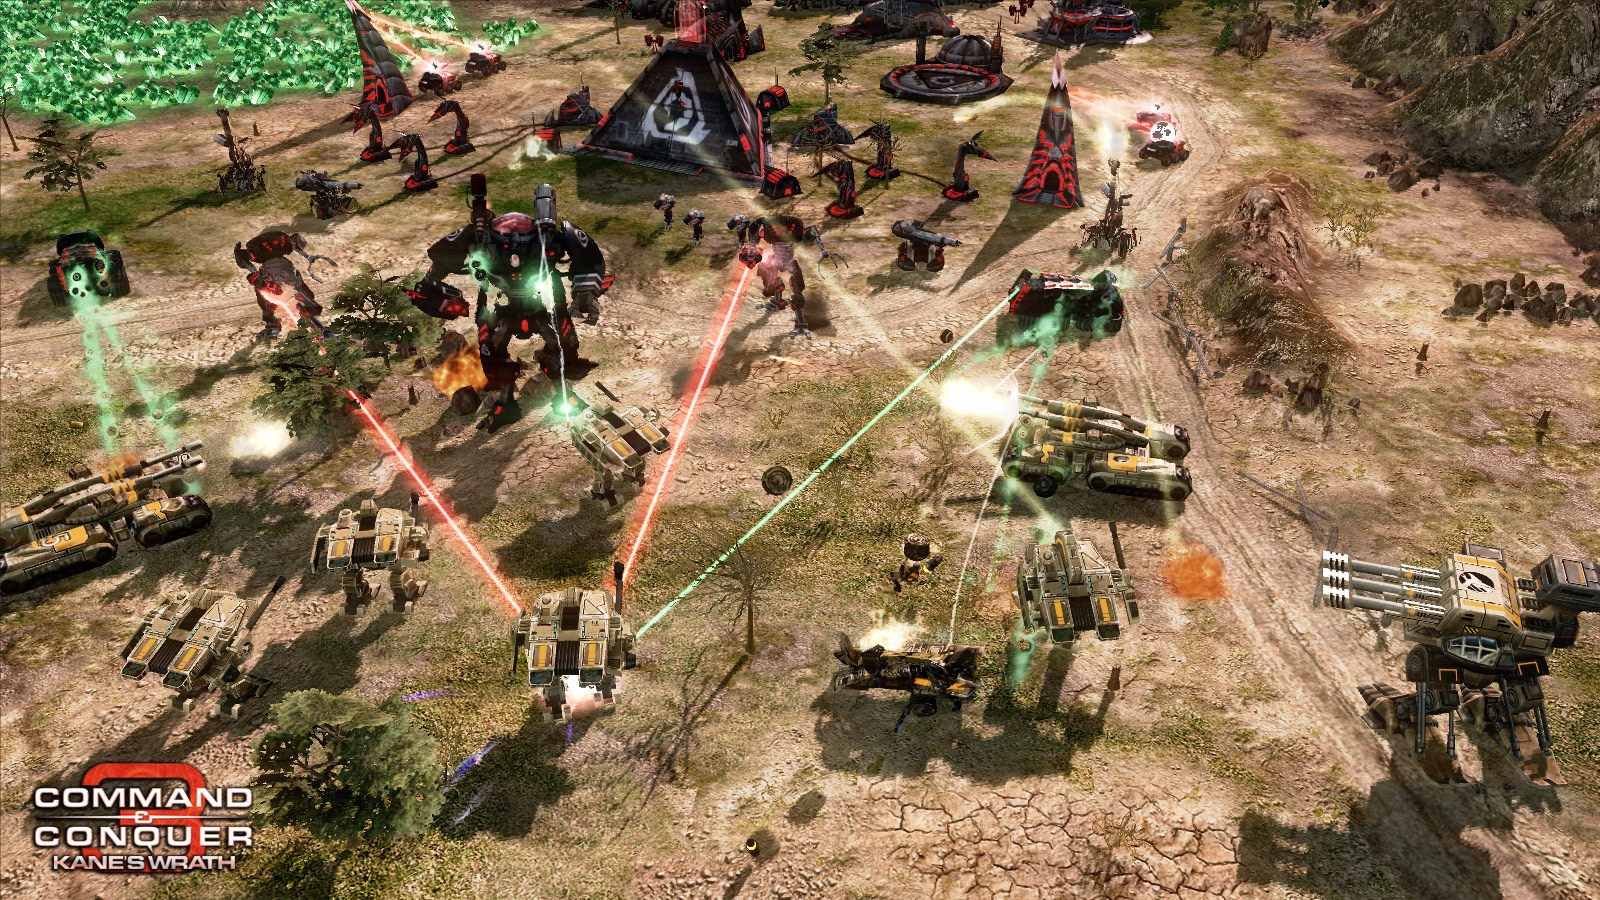 how to find out edition of command and conquer 4